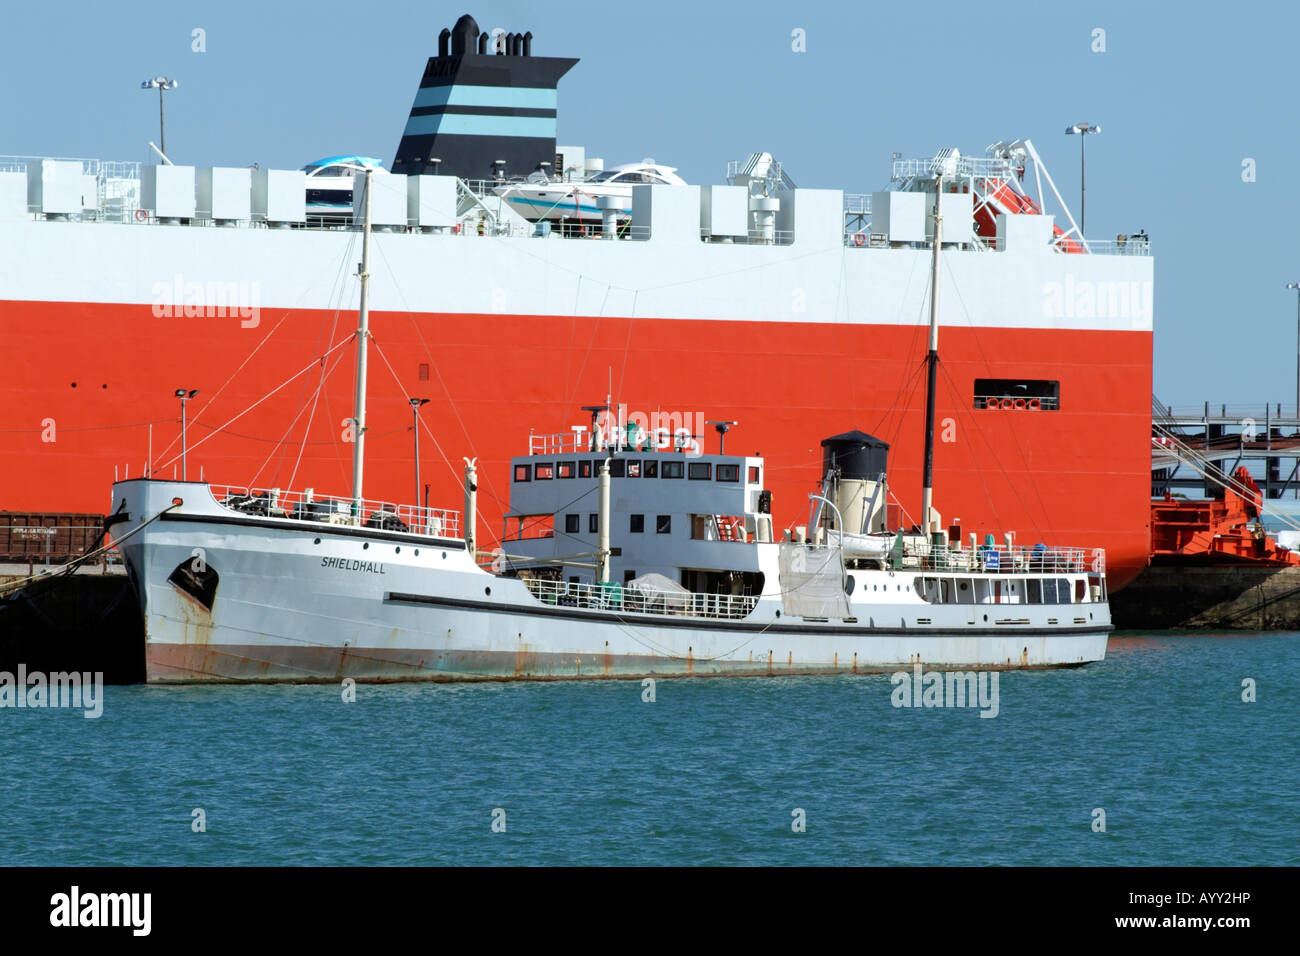 SS Shieldhall a Former Sludge Carrying Ship now a tourist excursion vessel in the Eastern Southampton Docks England - Stock Image